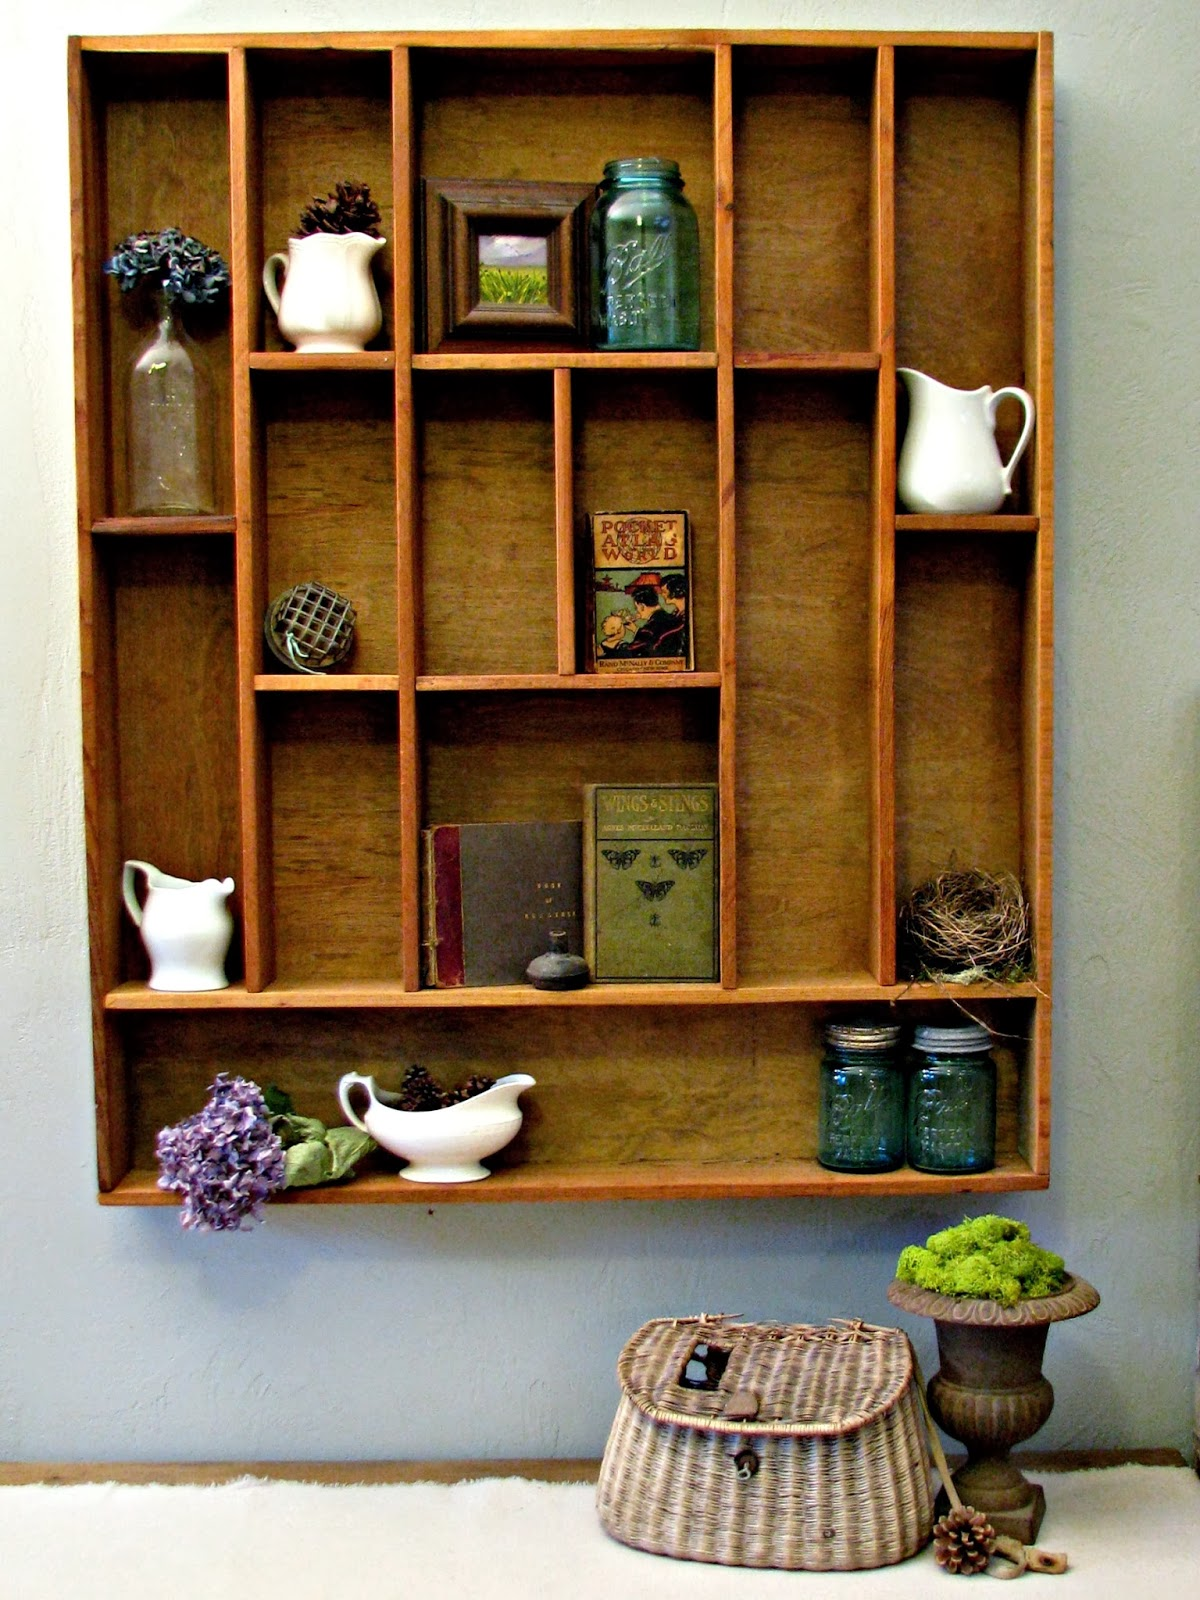 Blue roof cabin diy letterpress tray display shelf tutorial for How to make display shelves